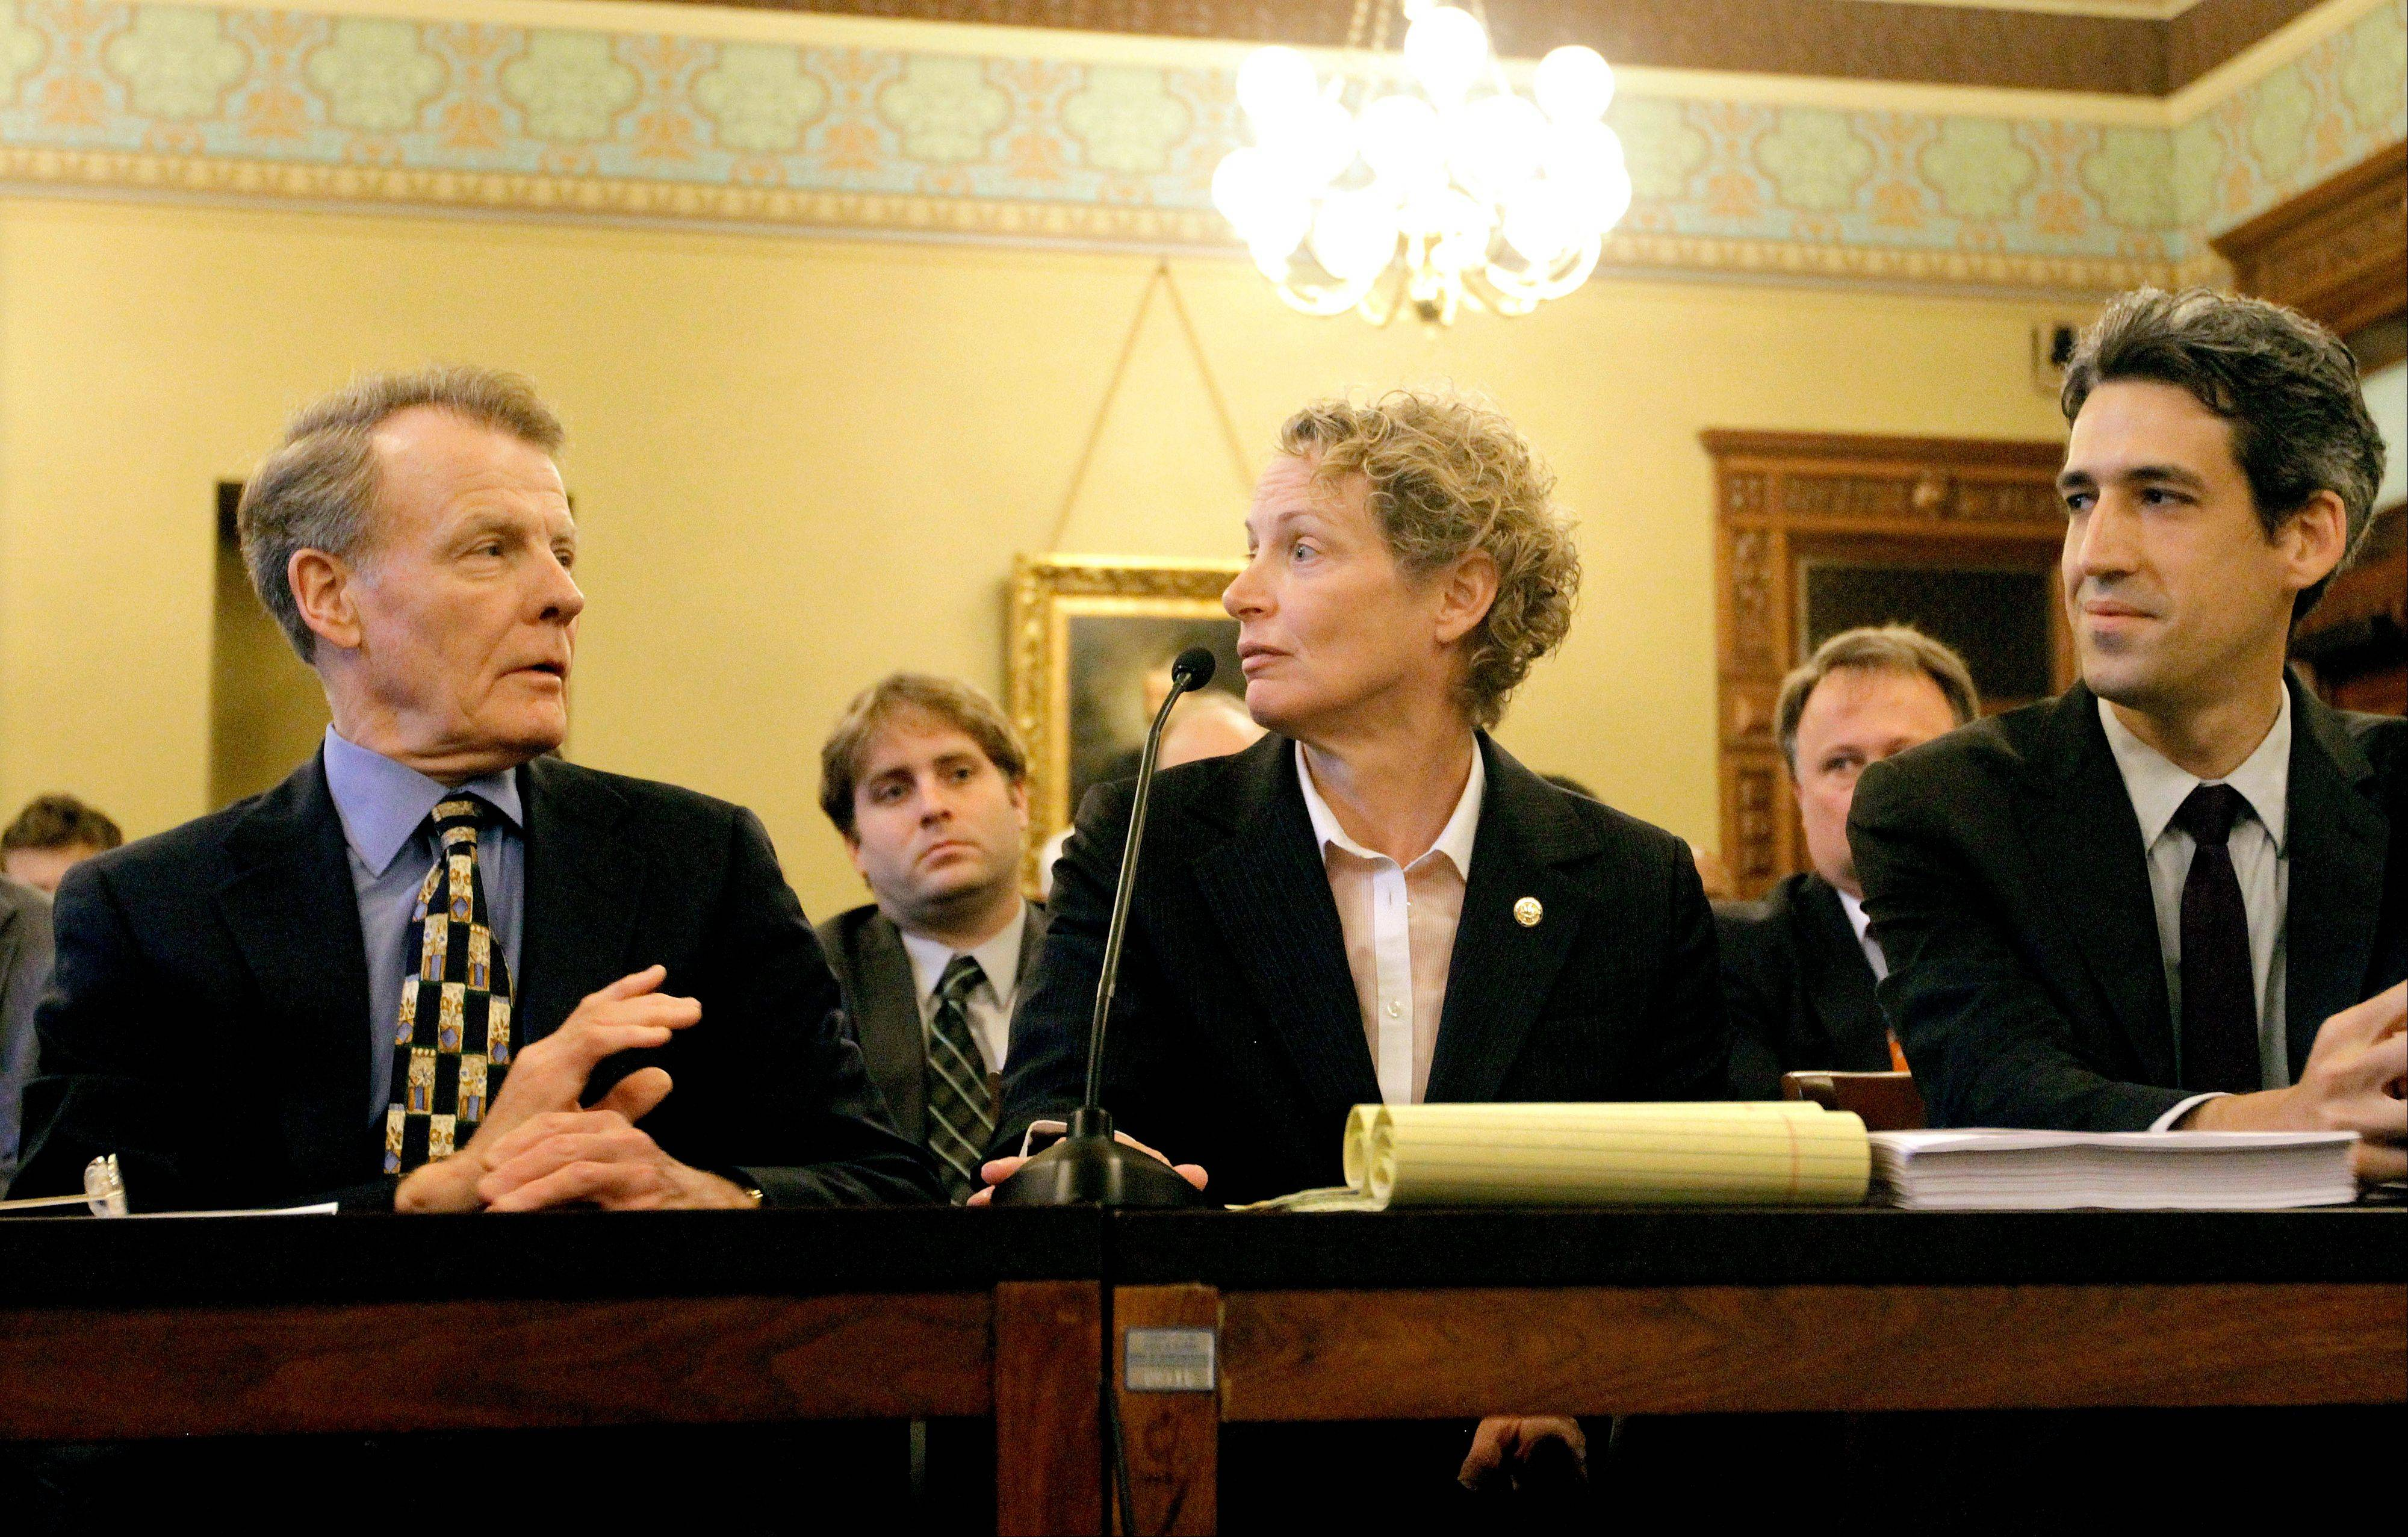 Illinois speaker of the House Michael Madigan, a Chicago Democrat, left, Rep. Elaine Nekritz, a Northbrook Democrat, and Rep. Daniel Biss, a Skokie Democrat, confer Tuesday before testifying during a House Personnel and Pensions Committee hearing at the Illinois State Capitol in Springfield. Lawmakers began acting on legislation to cut pensions for hundreds of thousands of public employees and make school districts take over retirement costs for their employees on Tuesday.